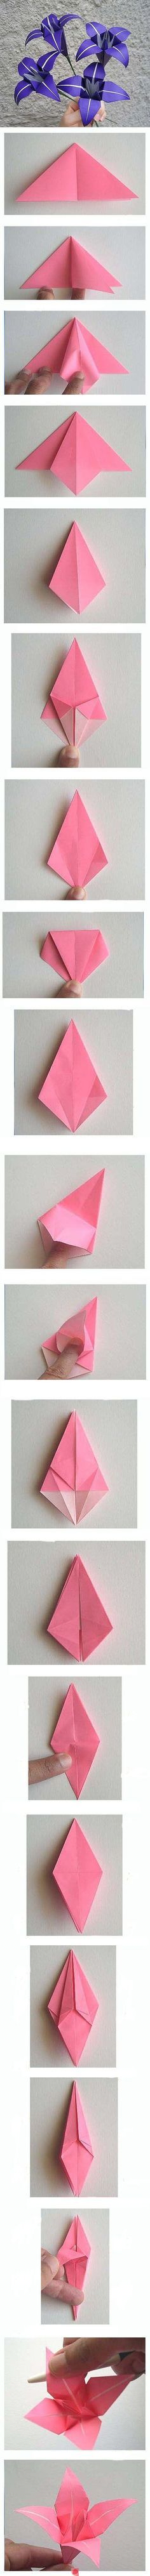 I actually know how to fold these